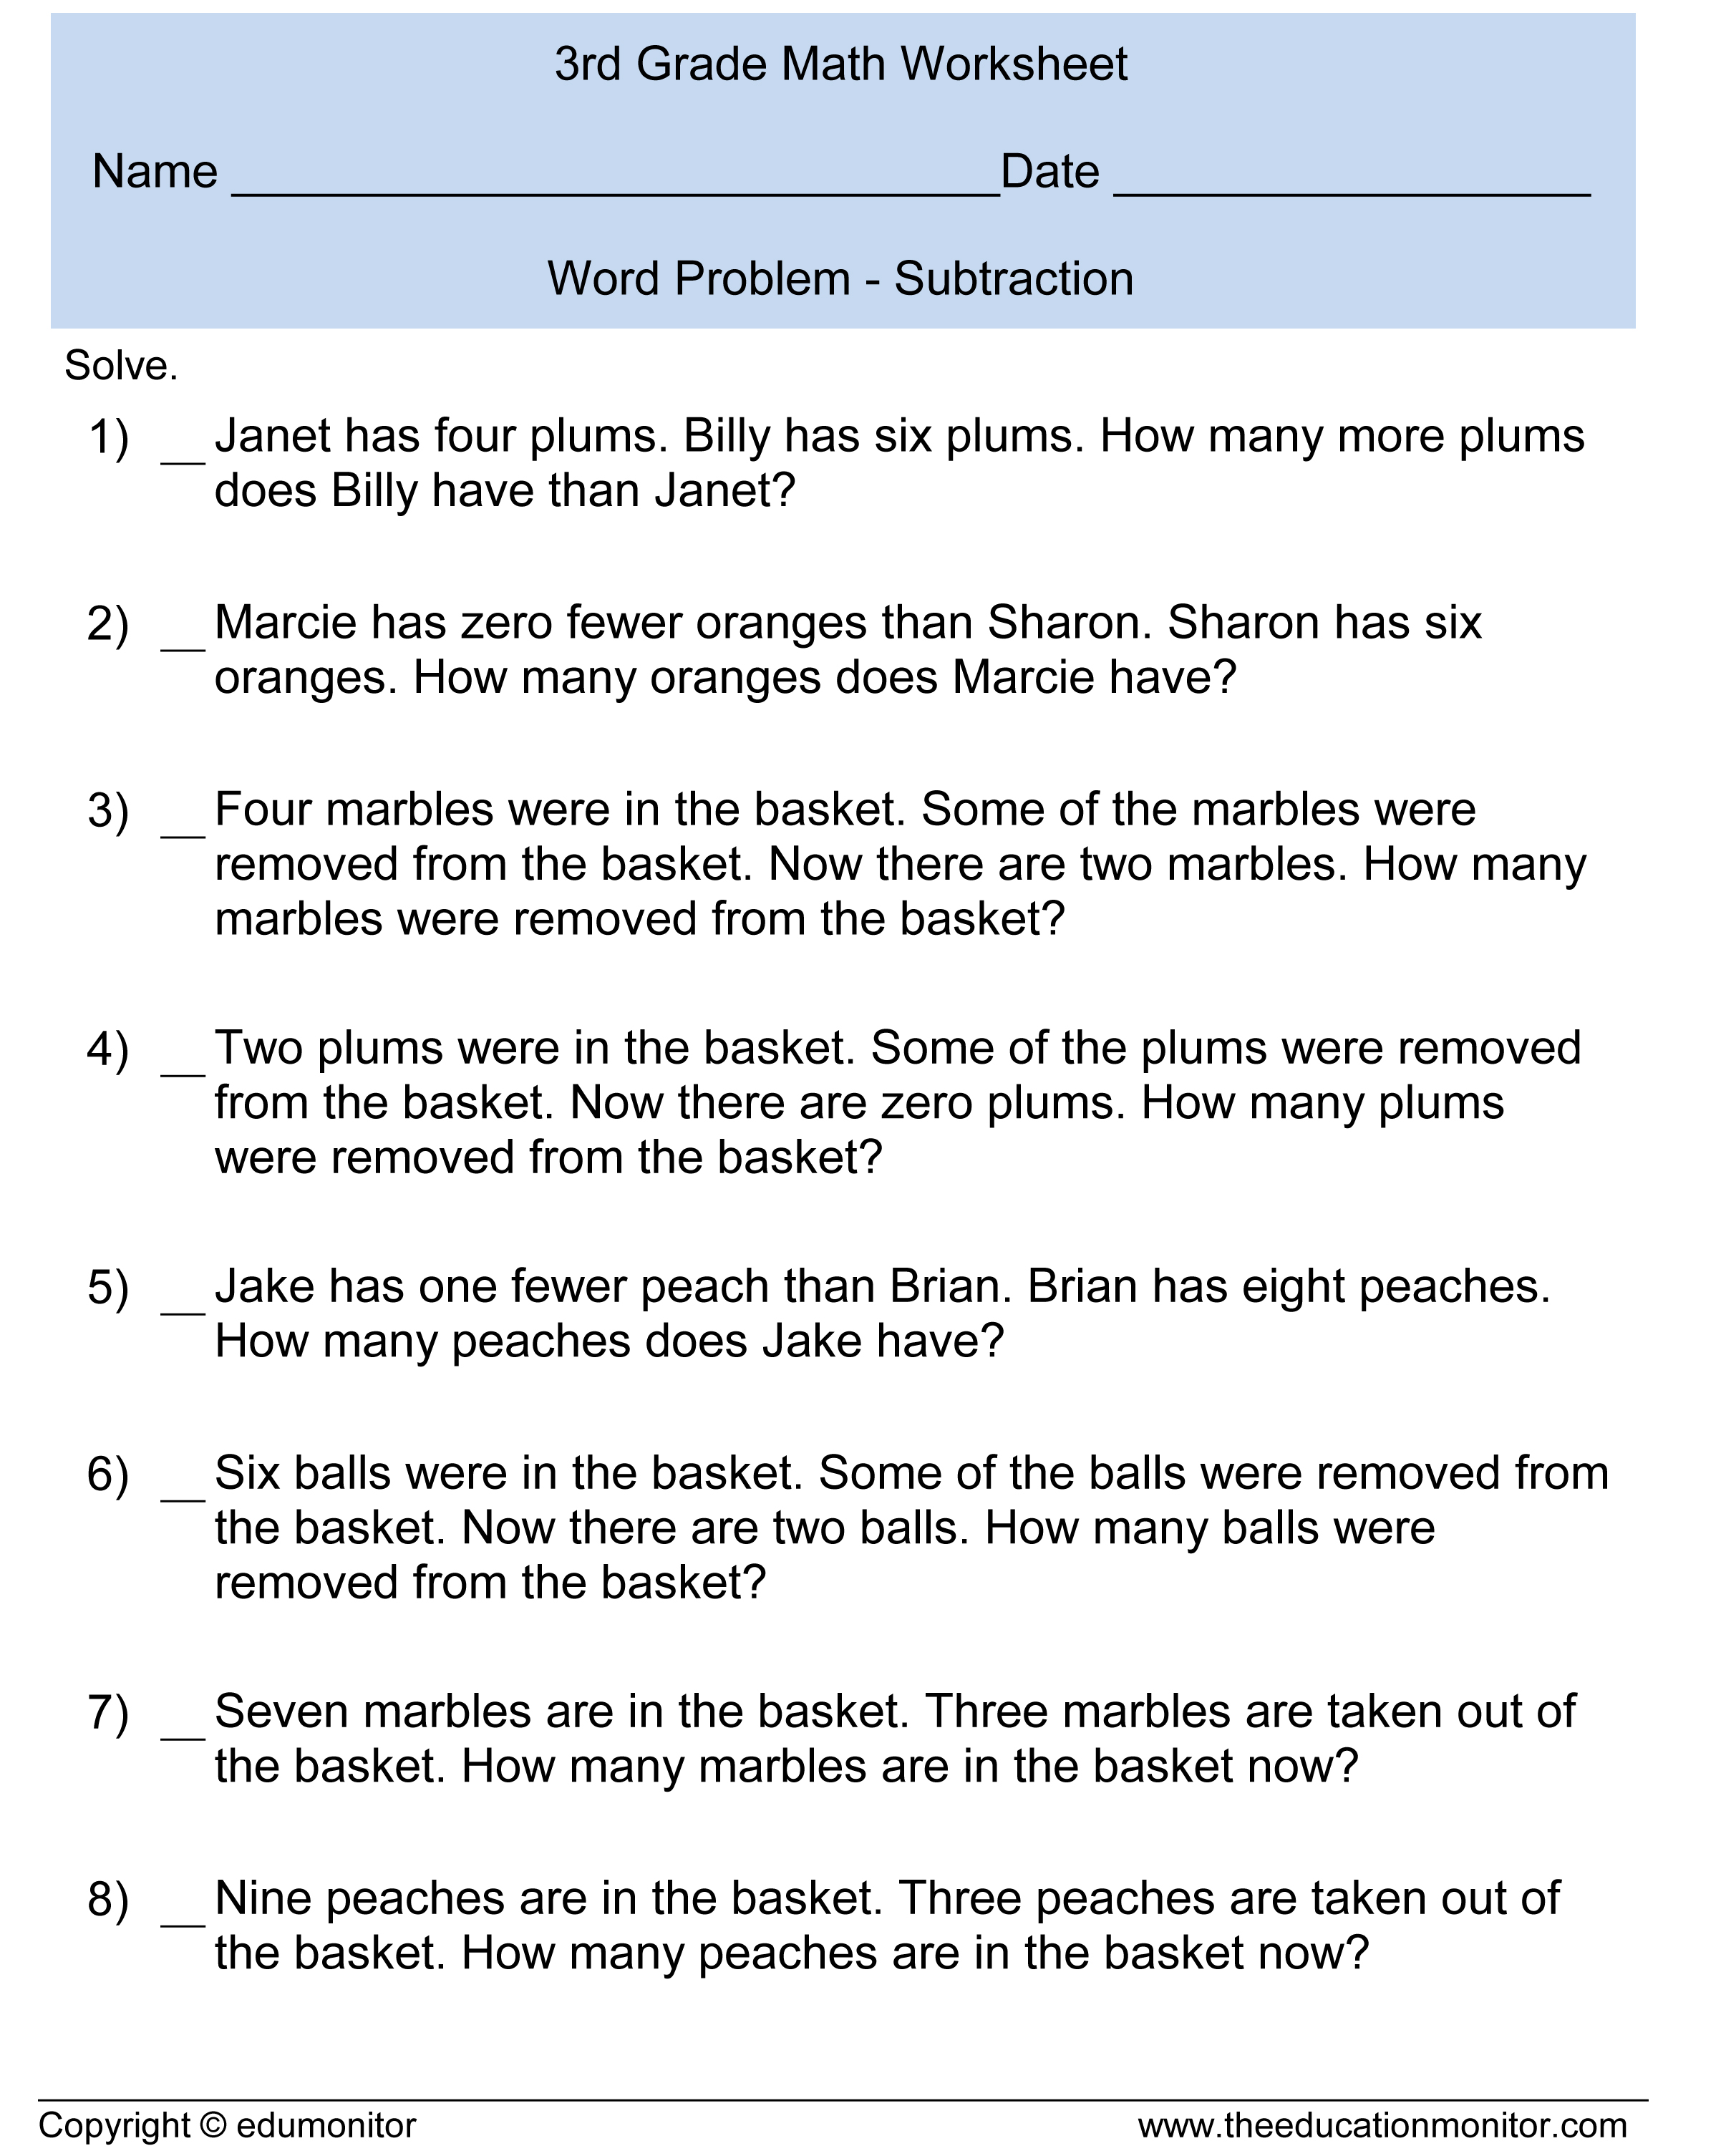 Worksheet Word Problems For Subtraction subtraction word problems 3rd grade for your kids problem 3 document